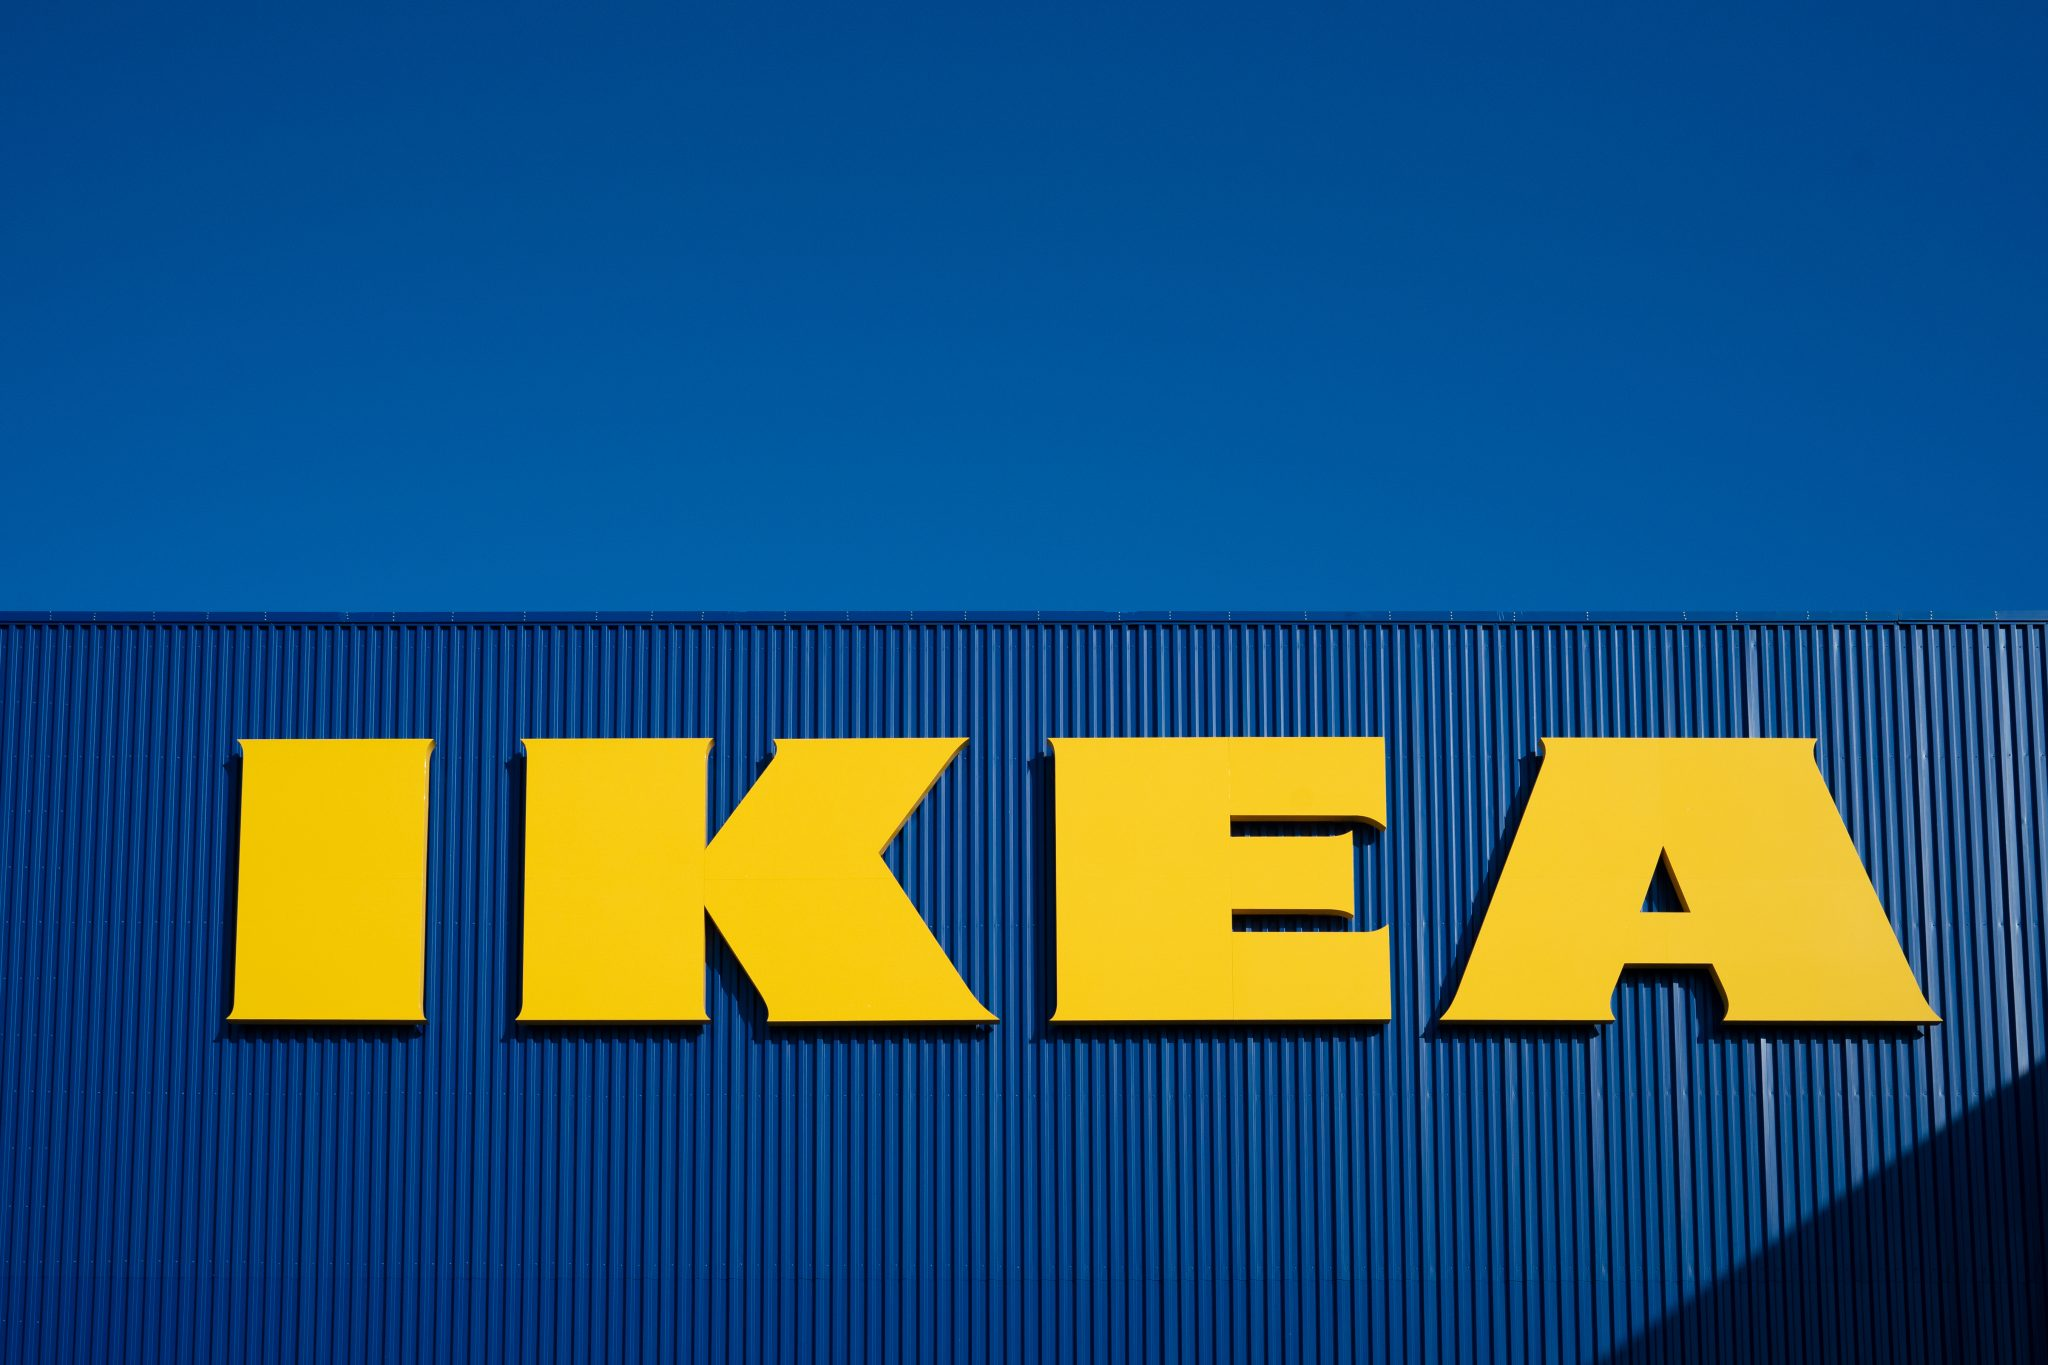 IKEA buys 49% stake in financial services partner Ikano Bank